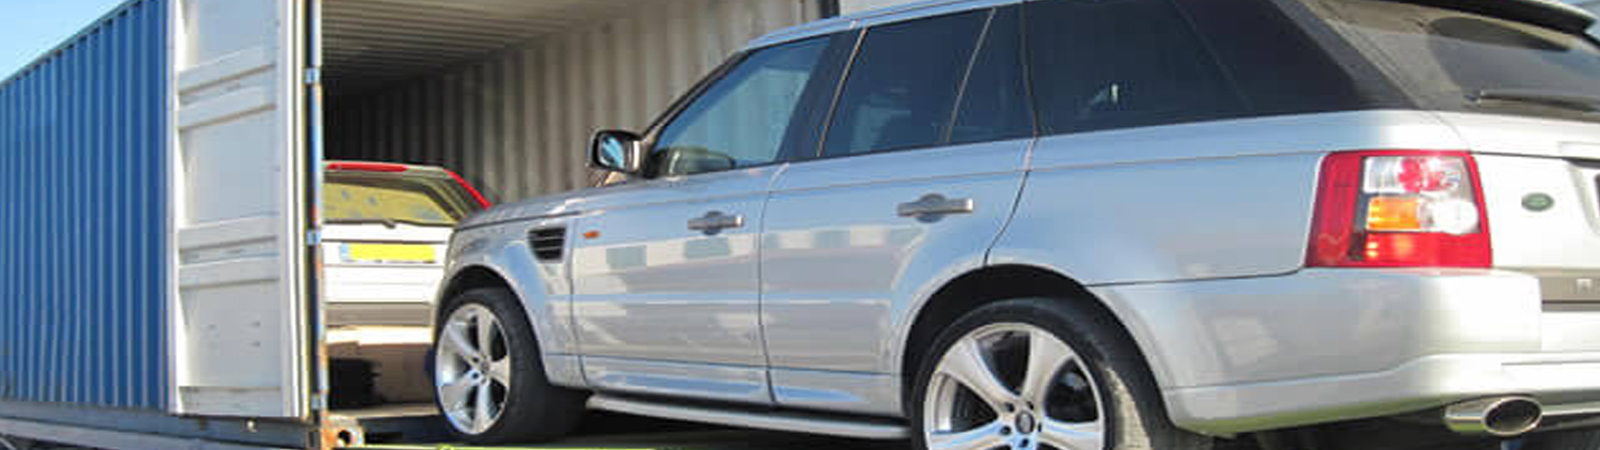 Luxury Car Shifting Services